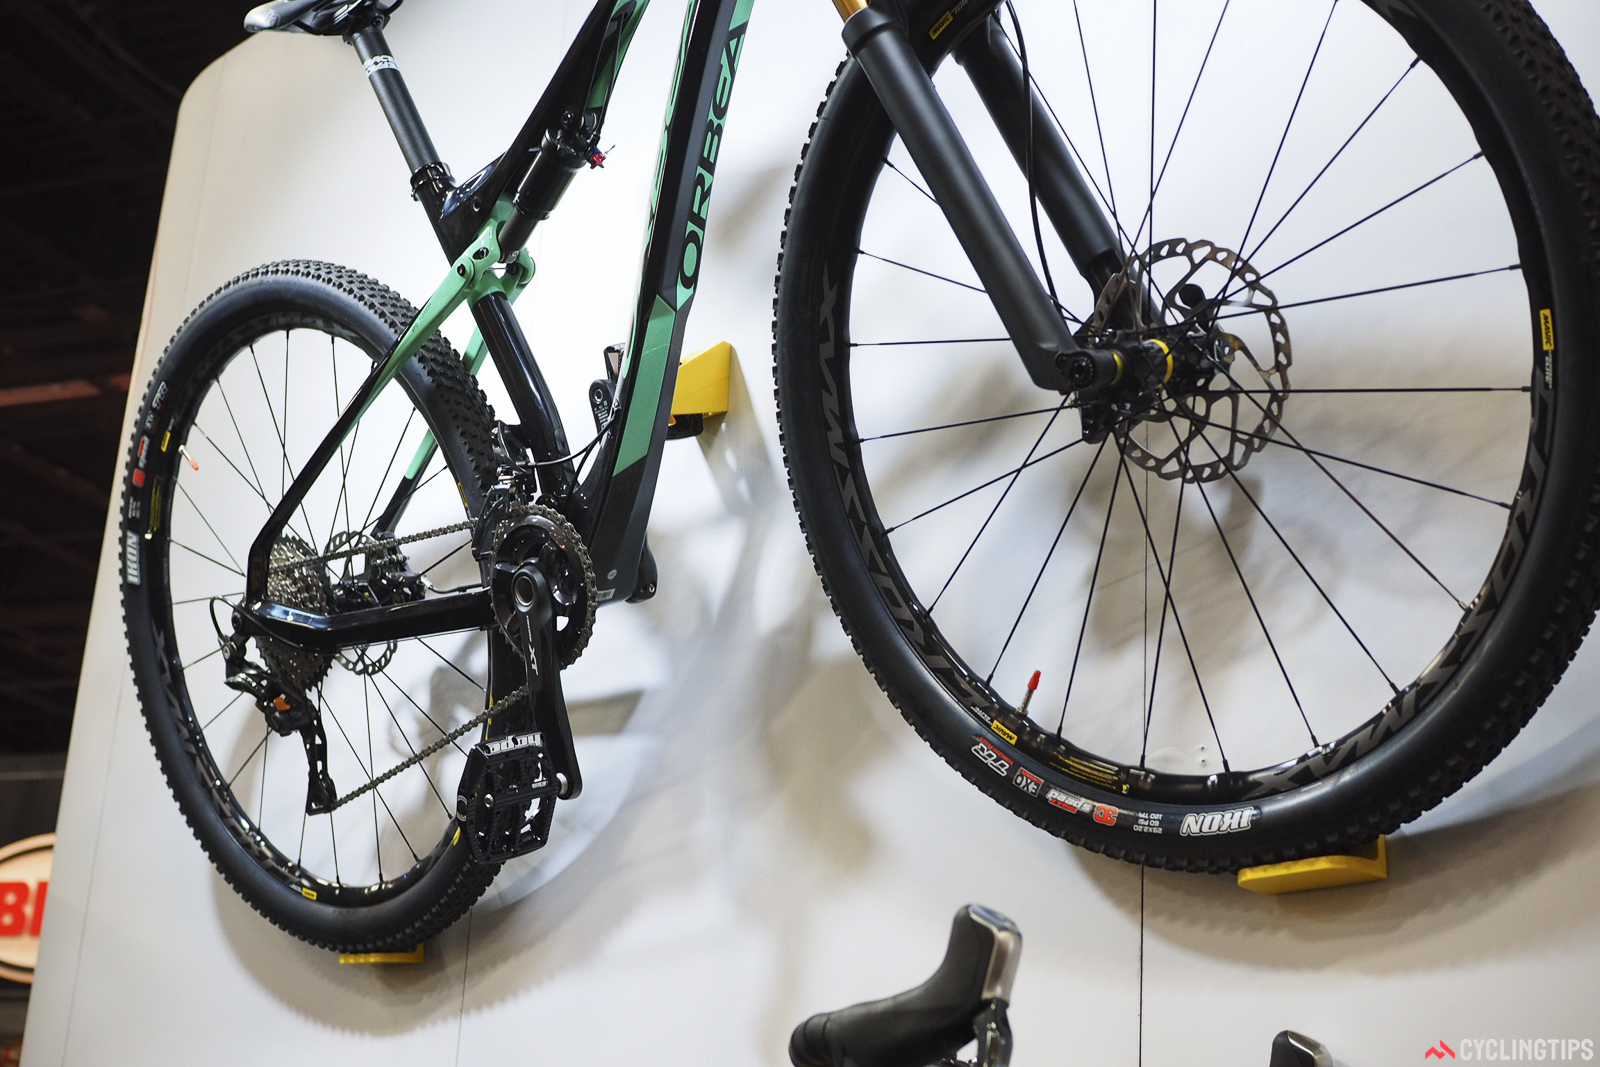 Cycloc also showed off the UK-made Hero, which secures the bike against the wall via a pedal hook and dual wheel shelves. Retail price is US$70.